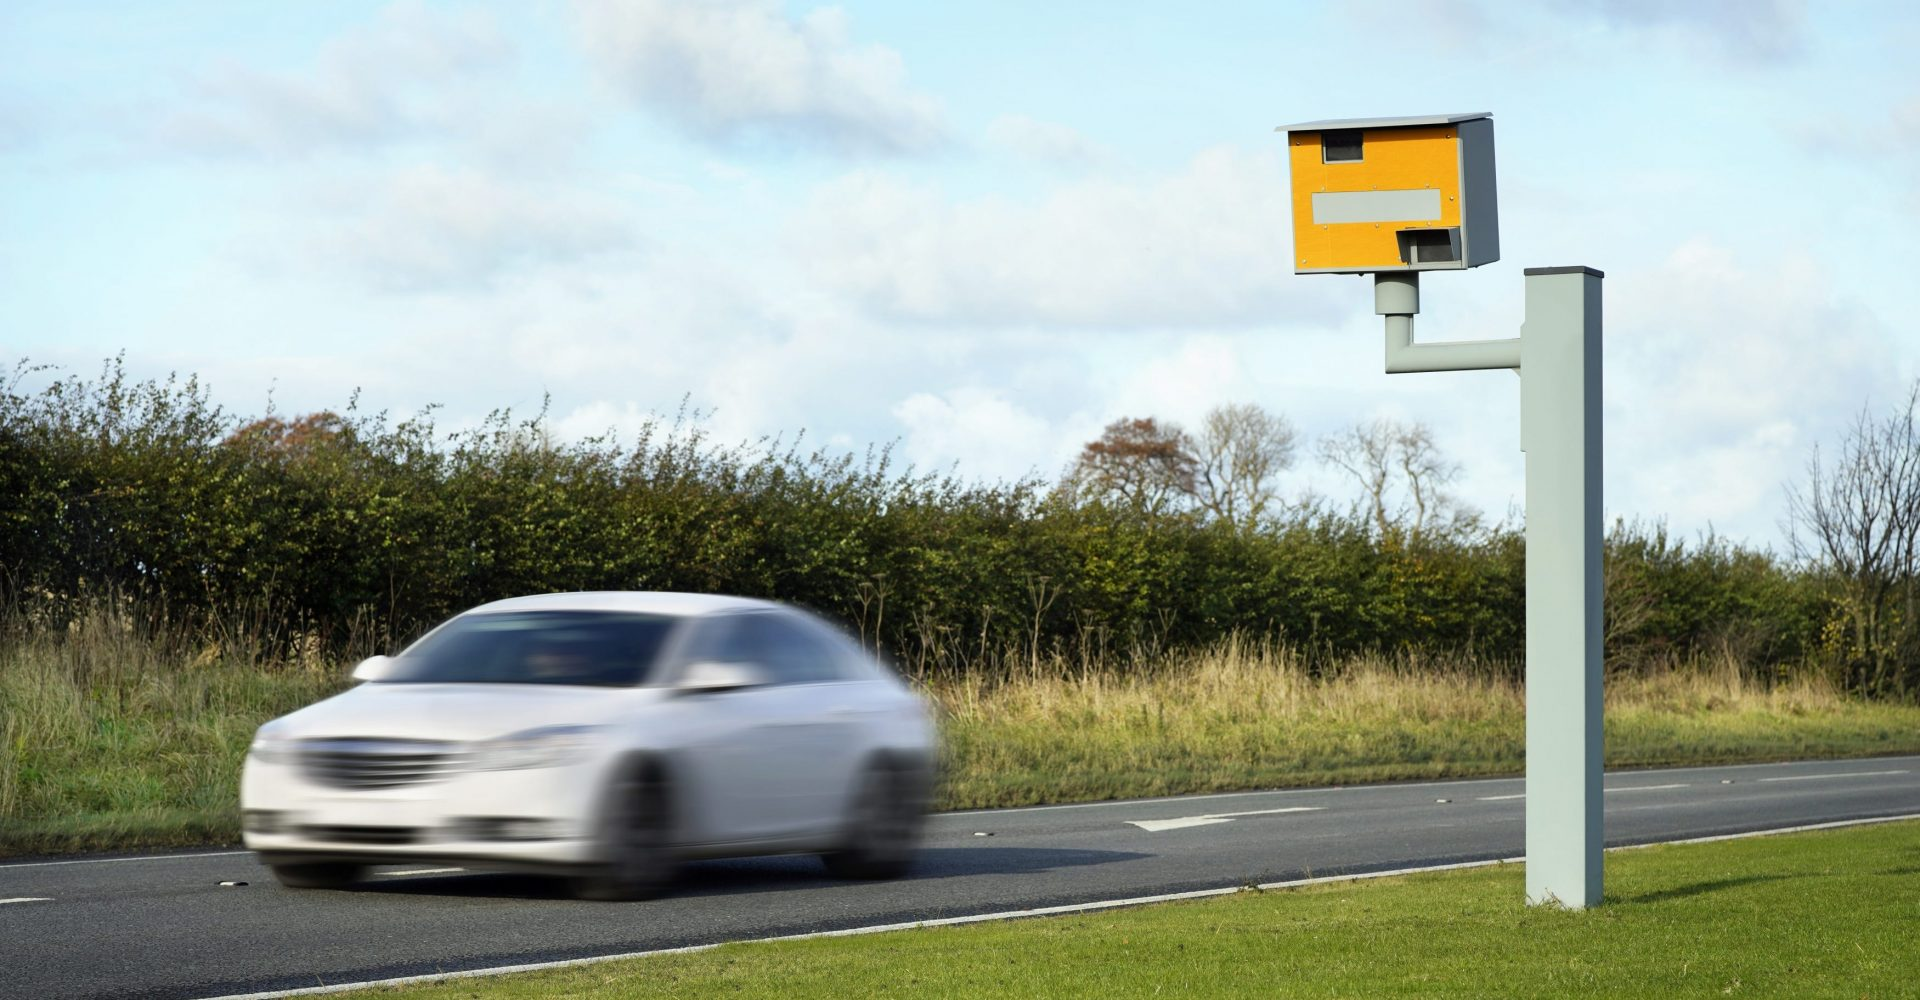 Speeding threatens road safety as much as drink and drug driving, says charity